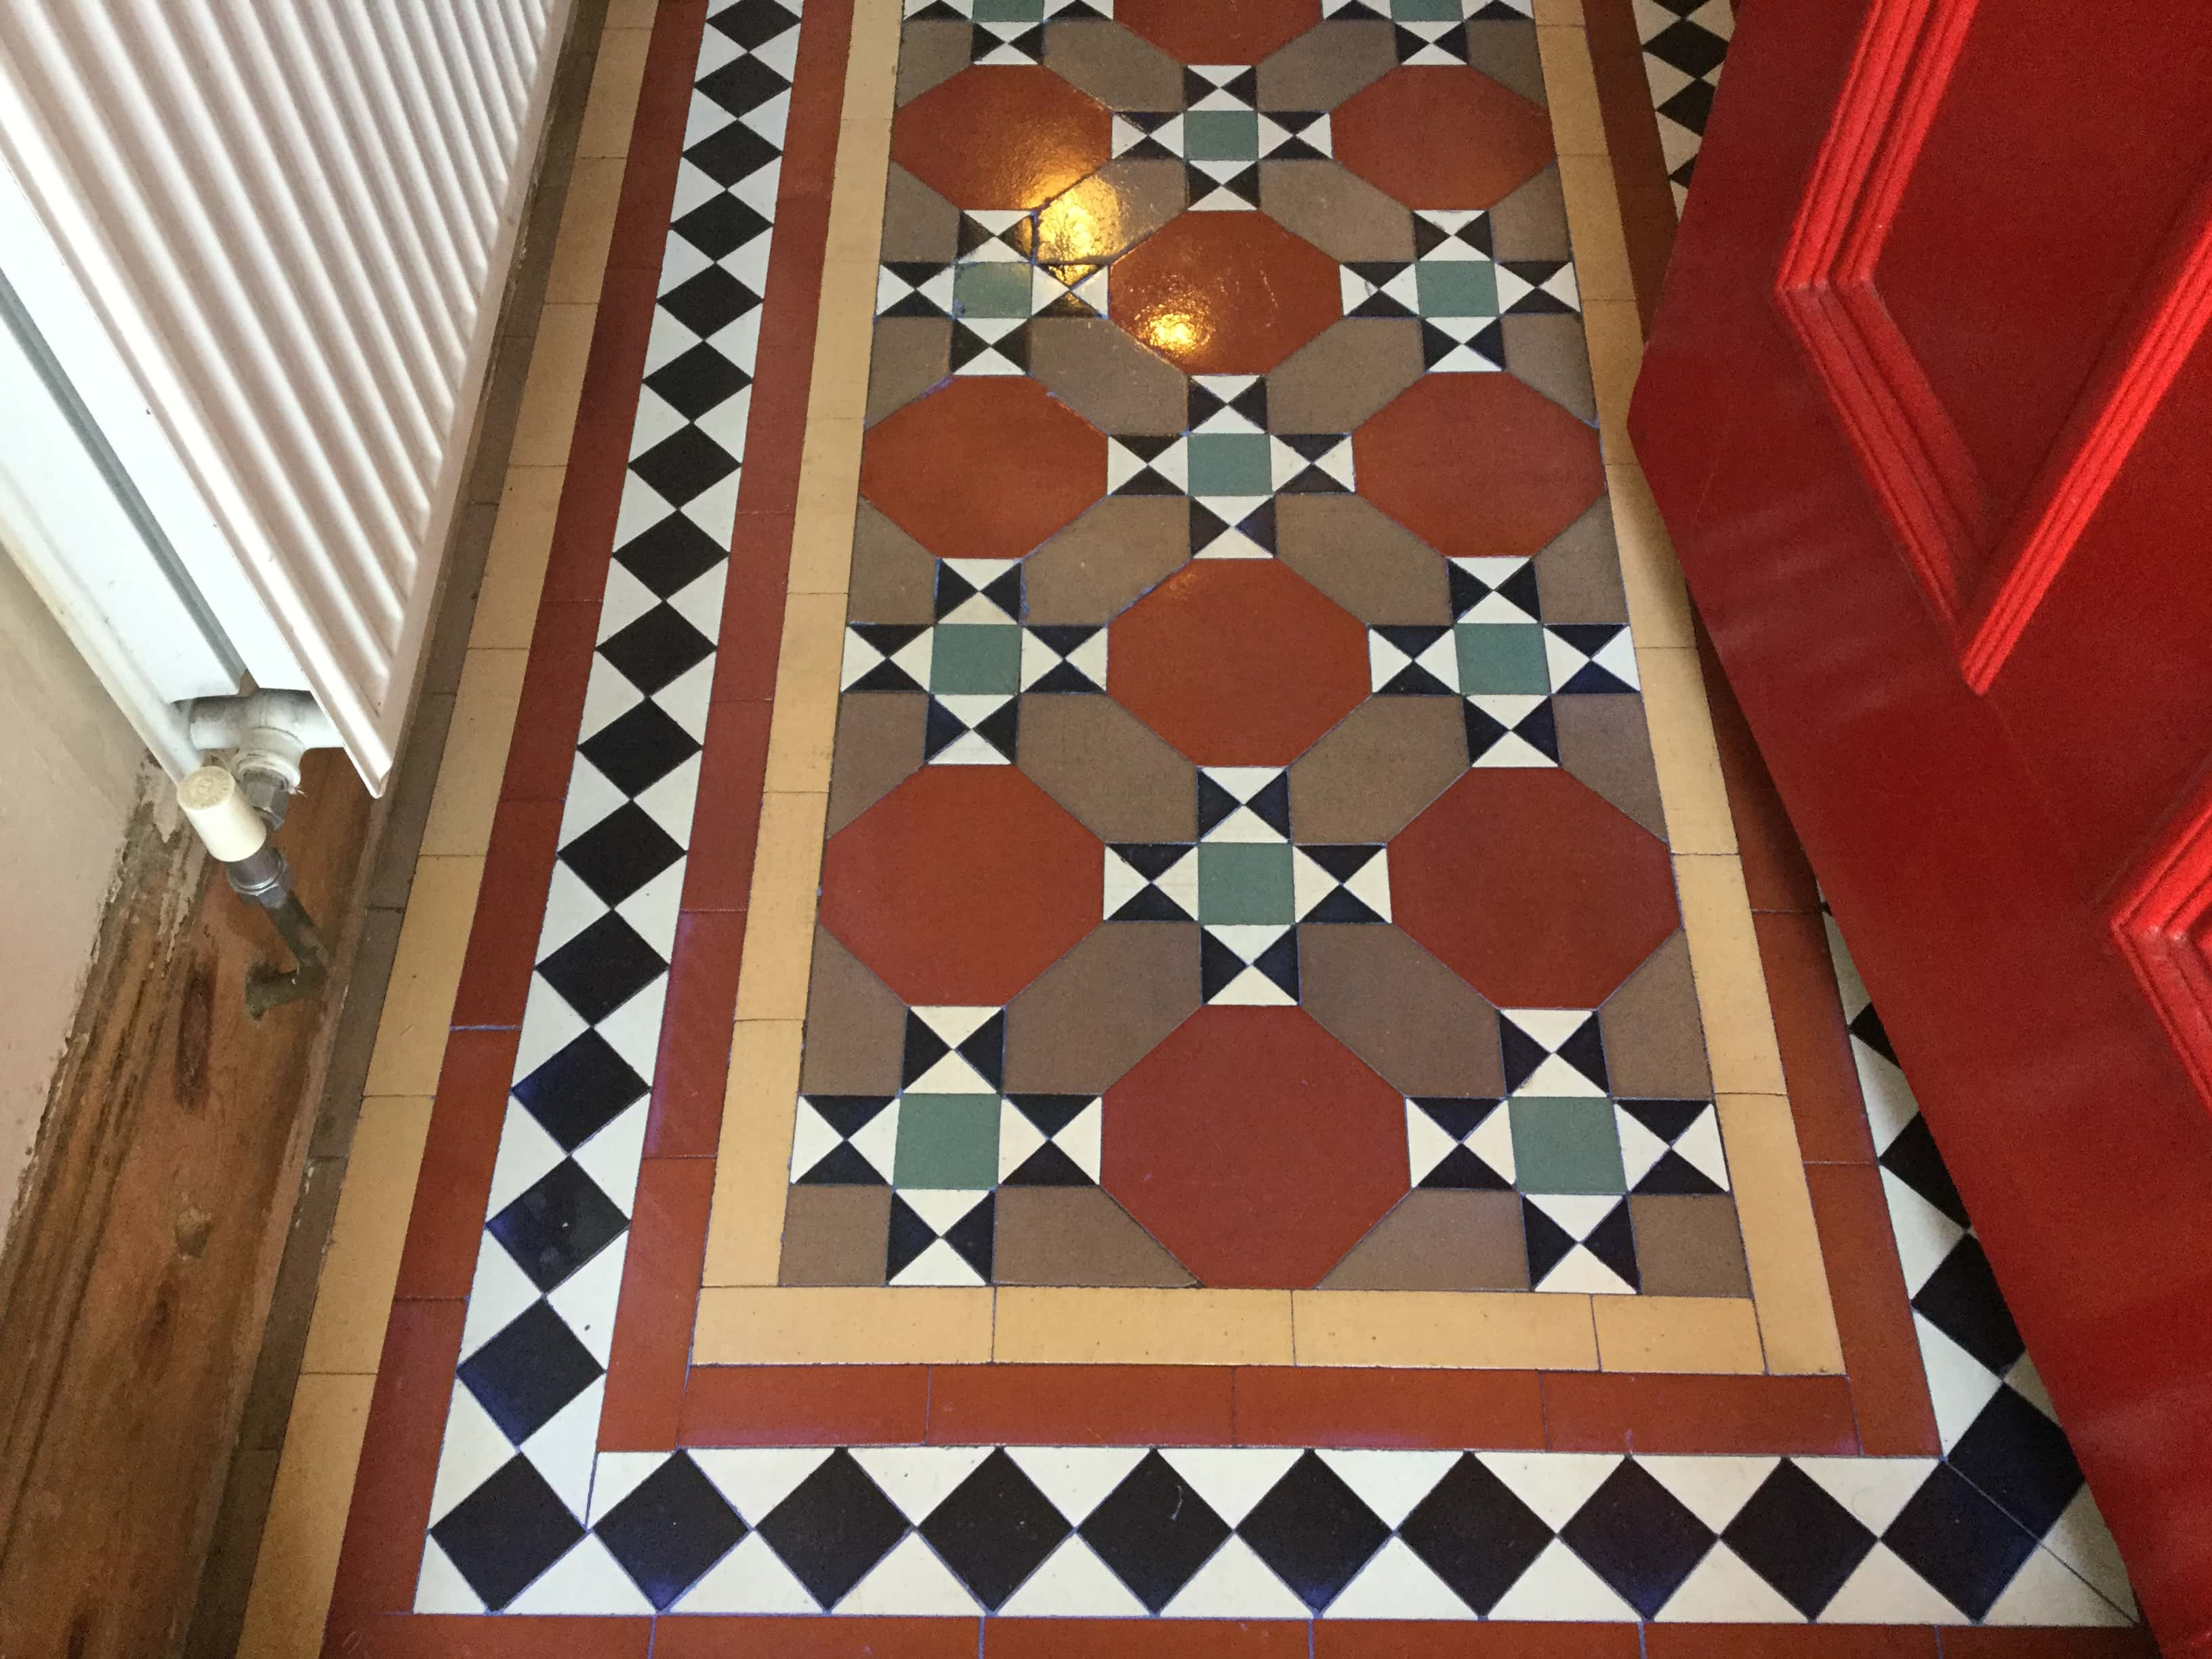 Victorian Tiled Hallway Floor Wellingborough After Restoration